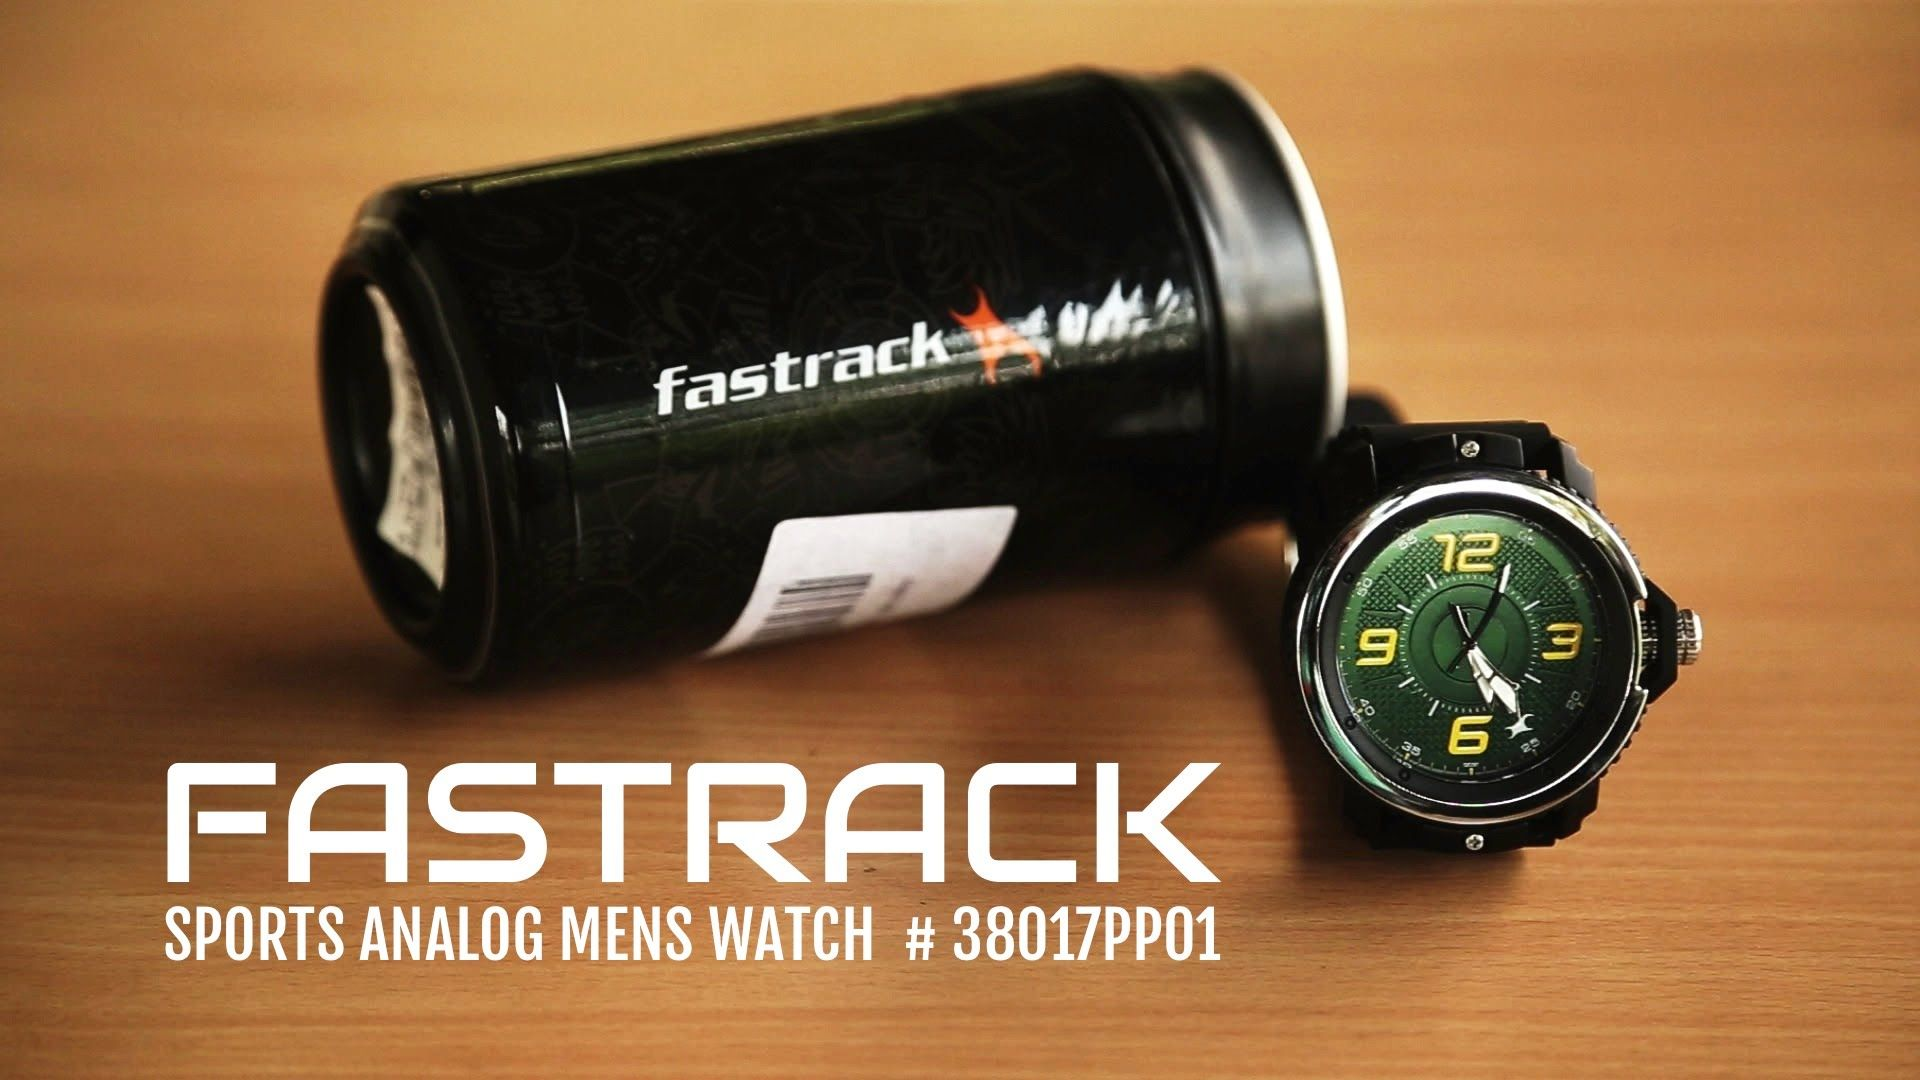 Fastrack Sports Analog Men's Watch 38017PP01 Unboxing